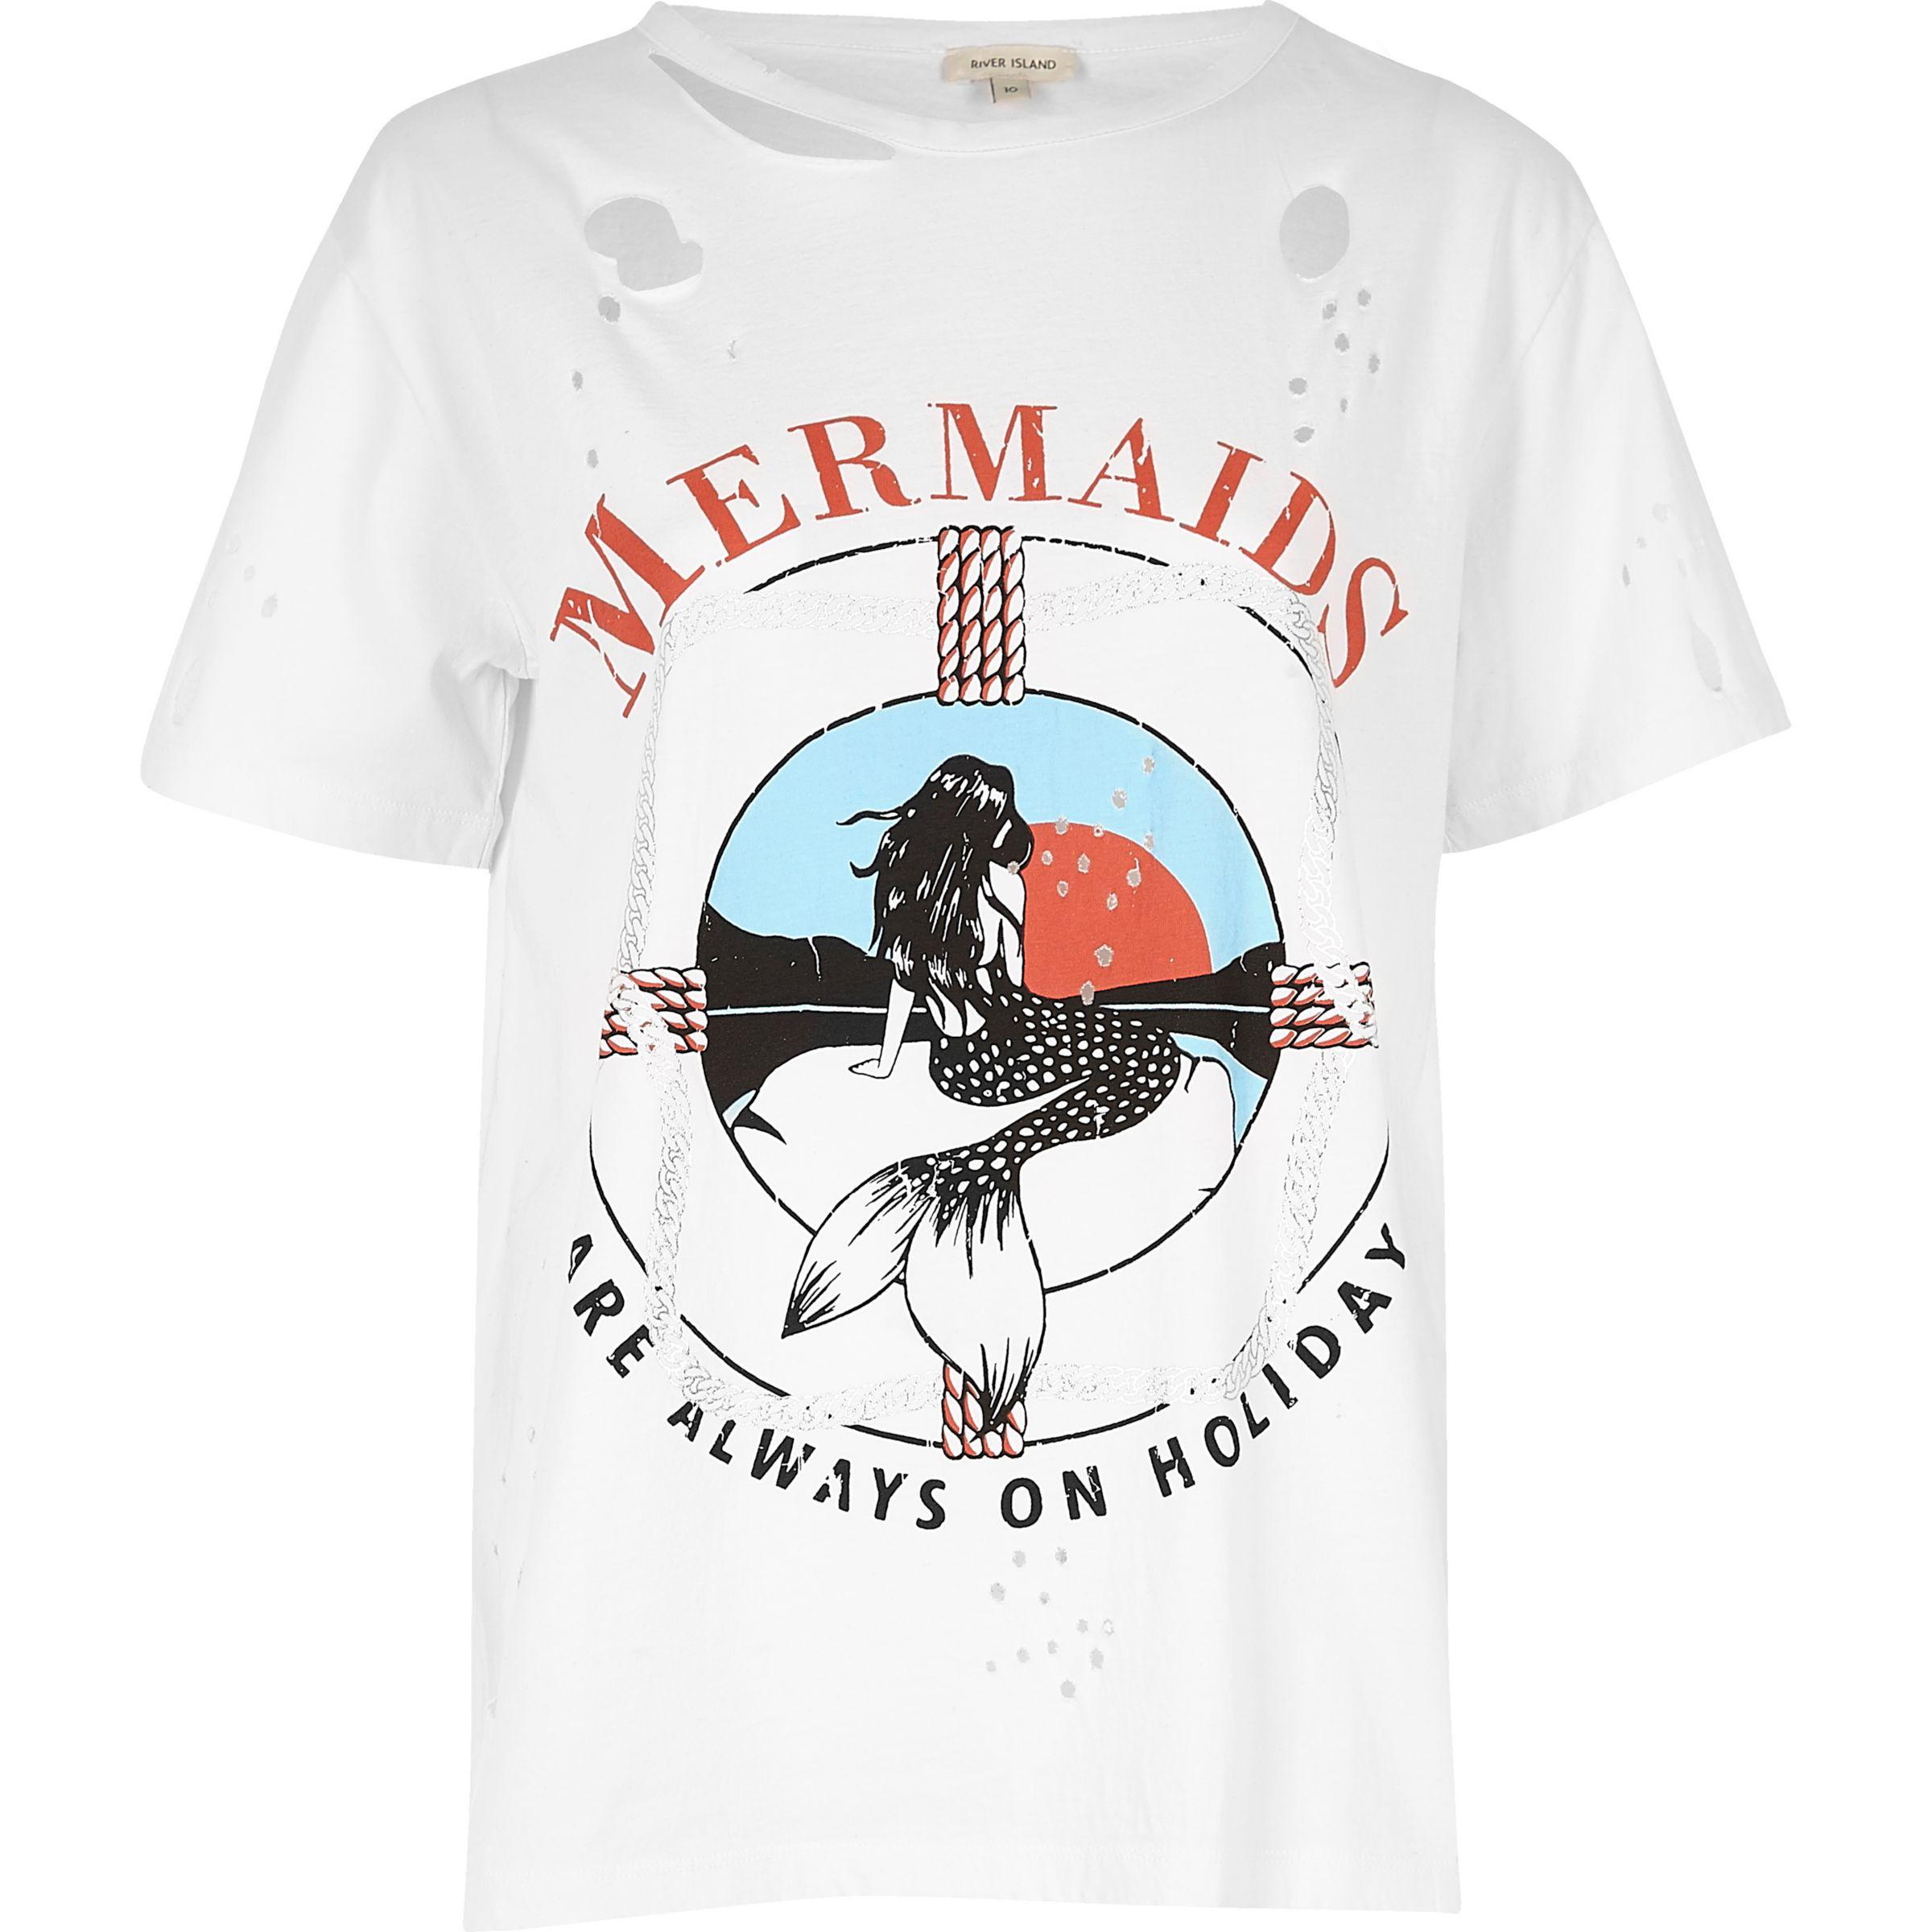 8f7c11c52d3 River Island White Mermaid Print Distressed Tee in White for Men - Lyst